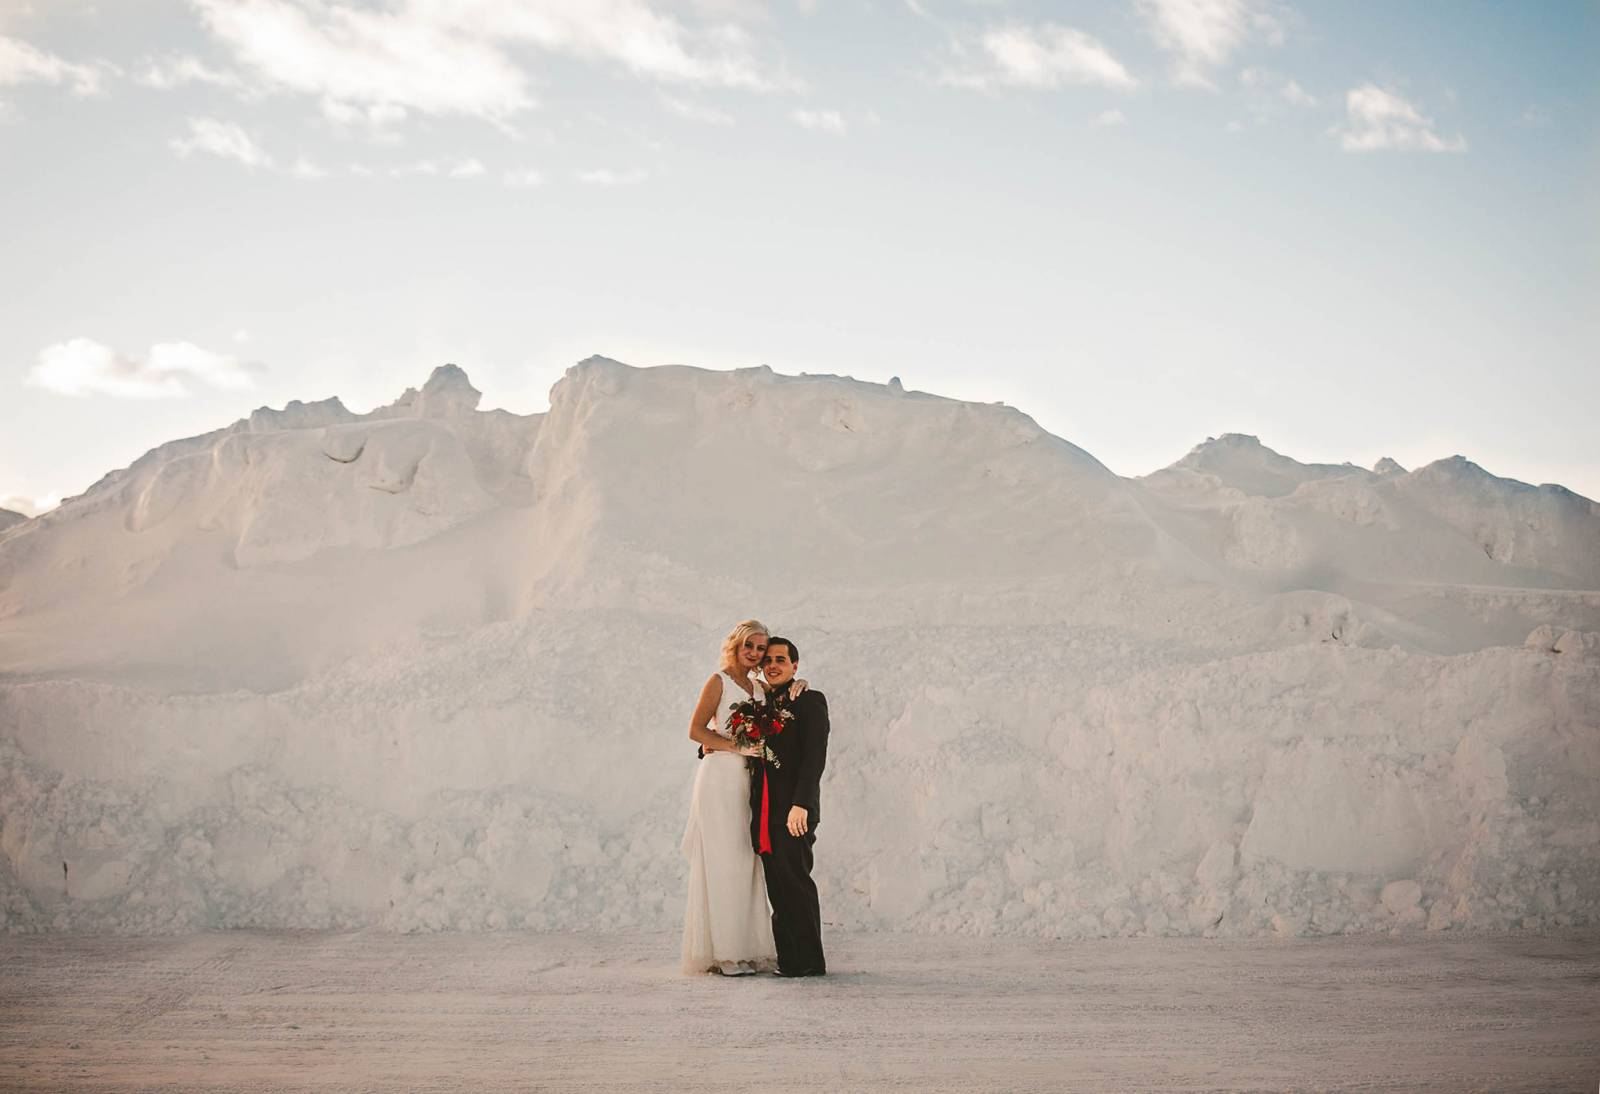 southwestern inspired wedding portrait by 40 Watt Photo